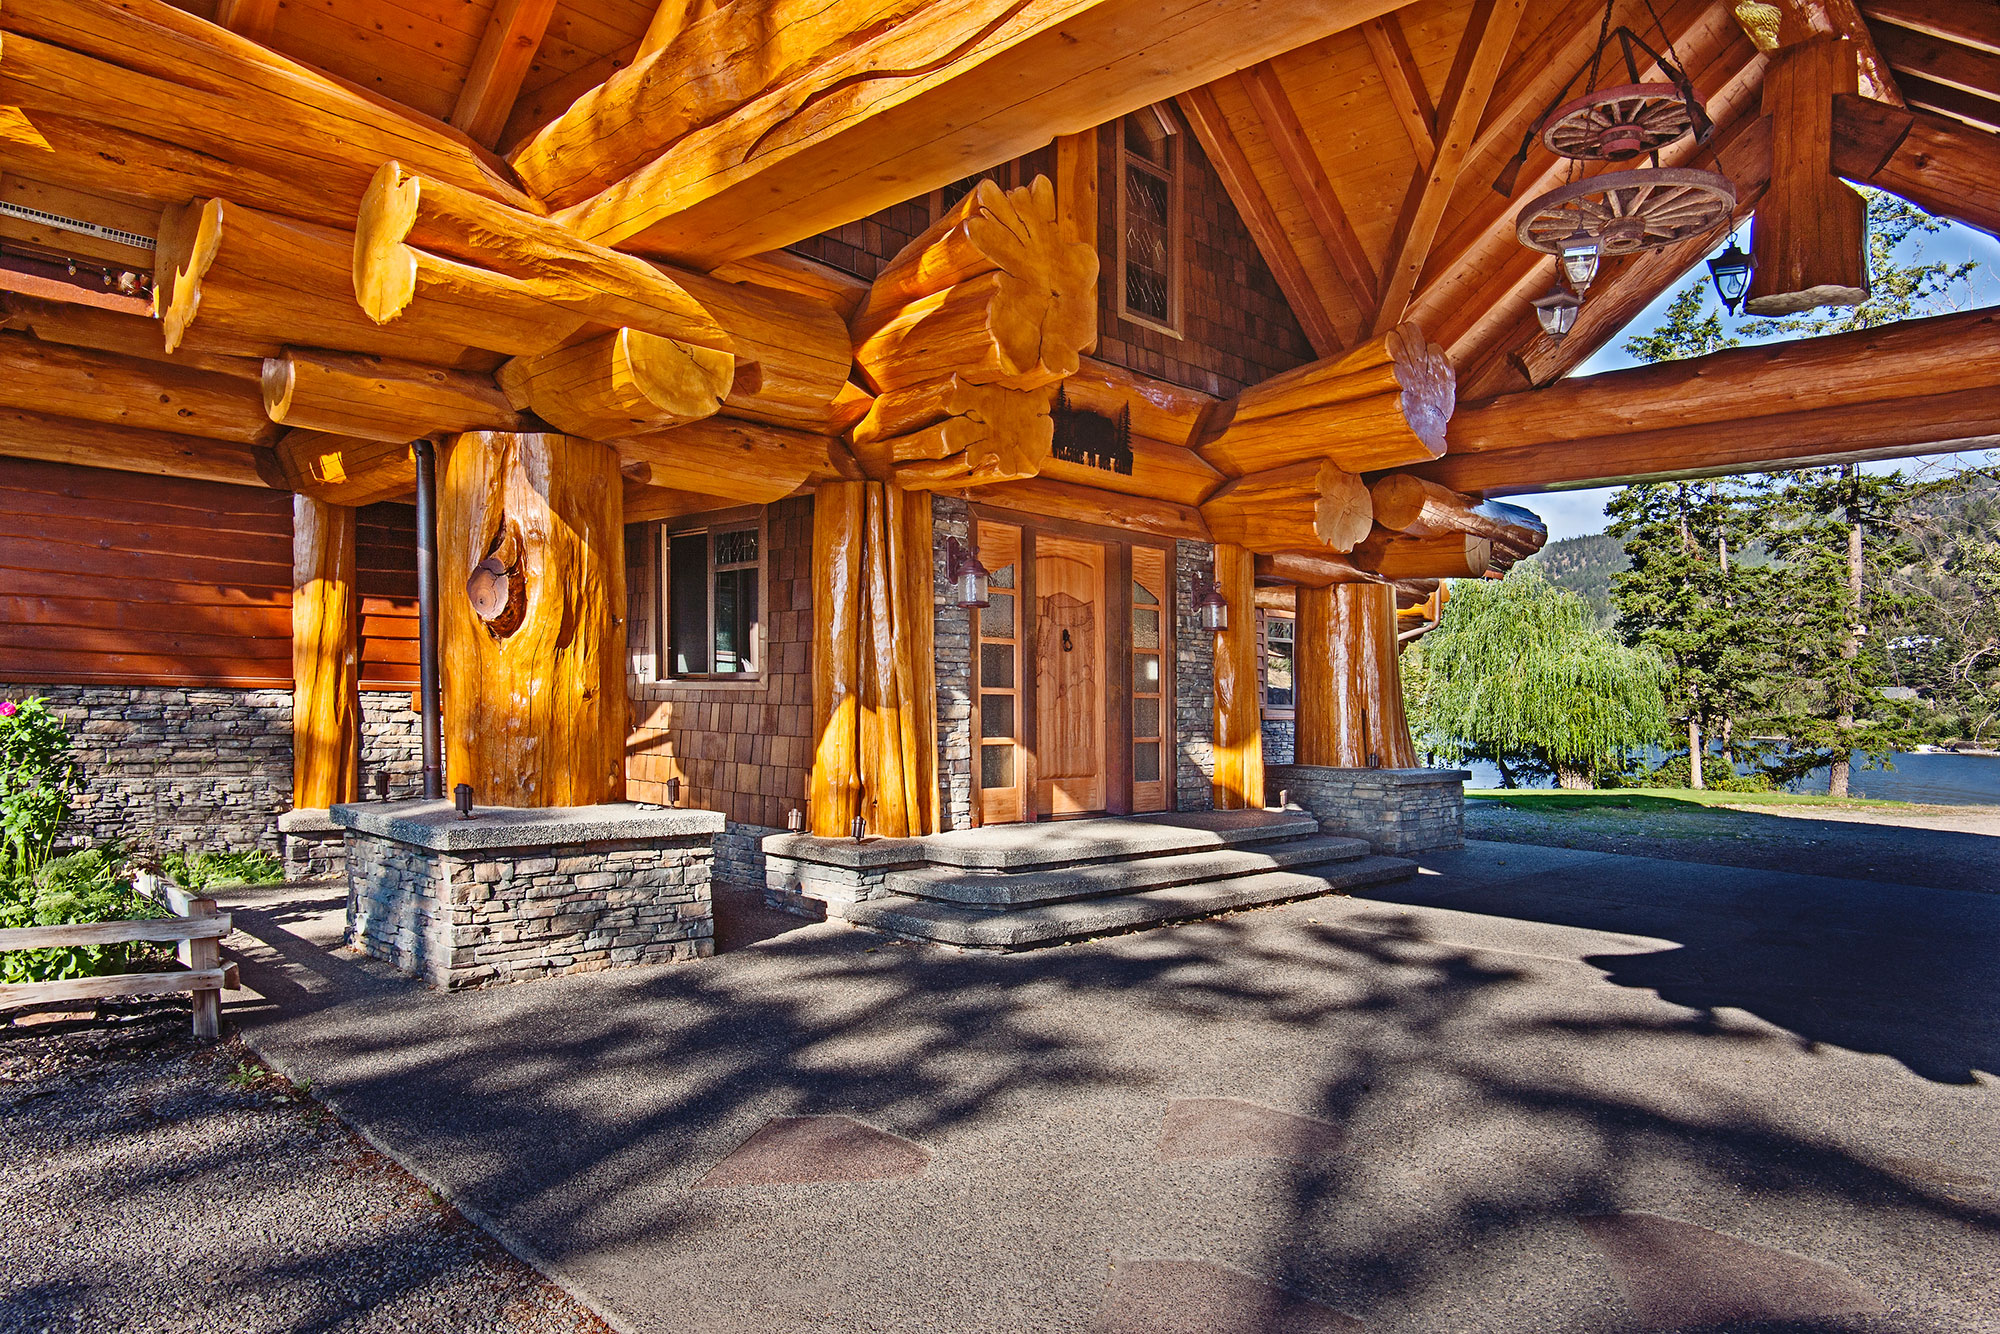 Home: Timber King's Log Home Masterpiece